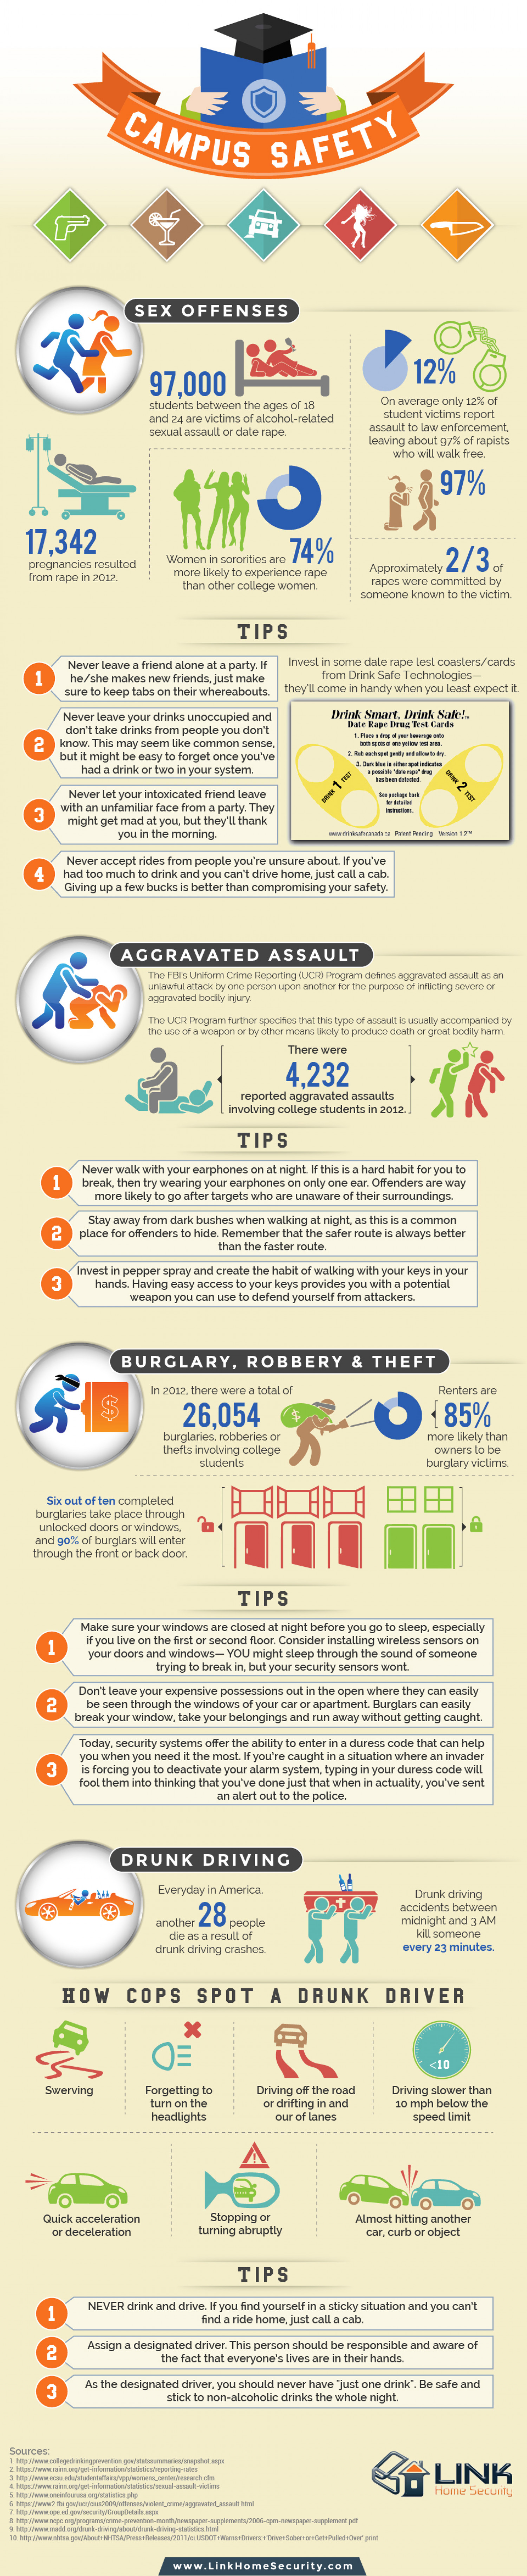 Campus Safety Infographic Infographic